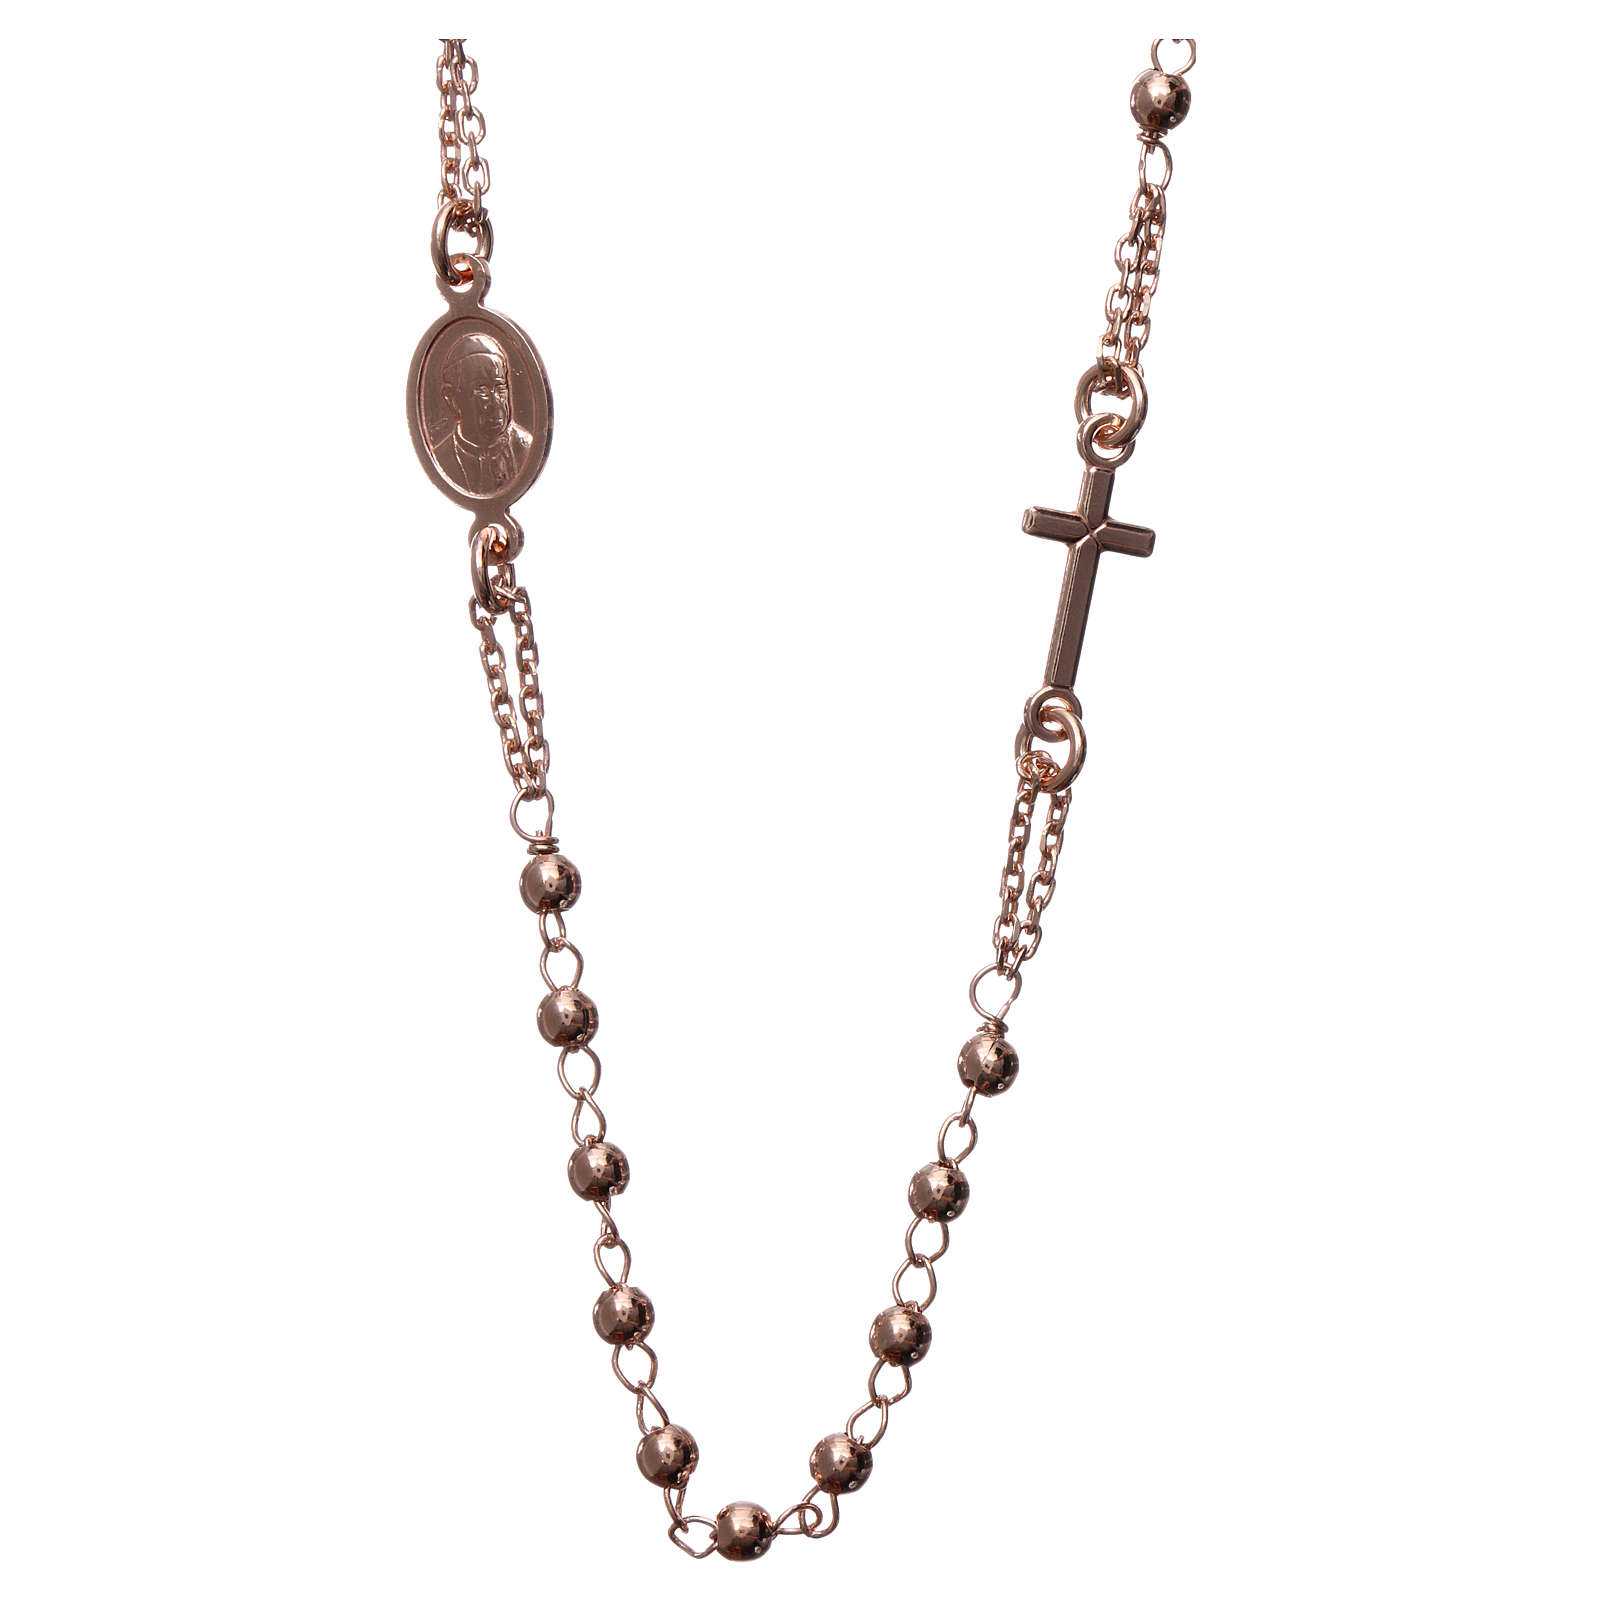 Rosary AMEN Necklace silver 925 Rosè finish 4